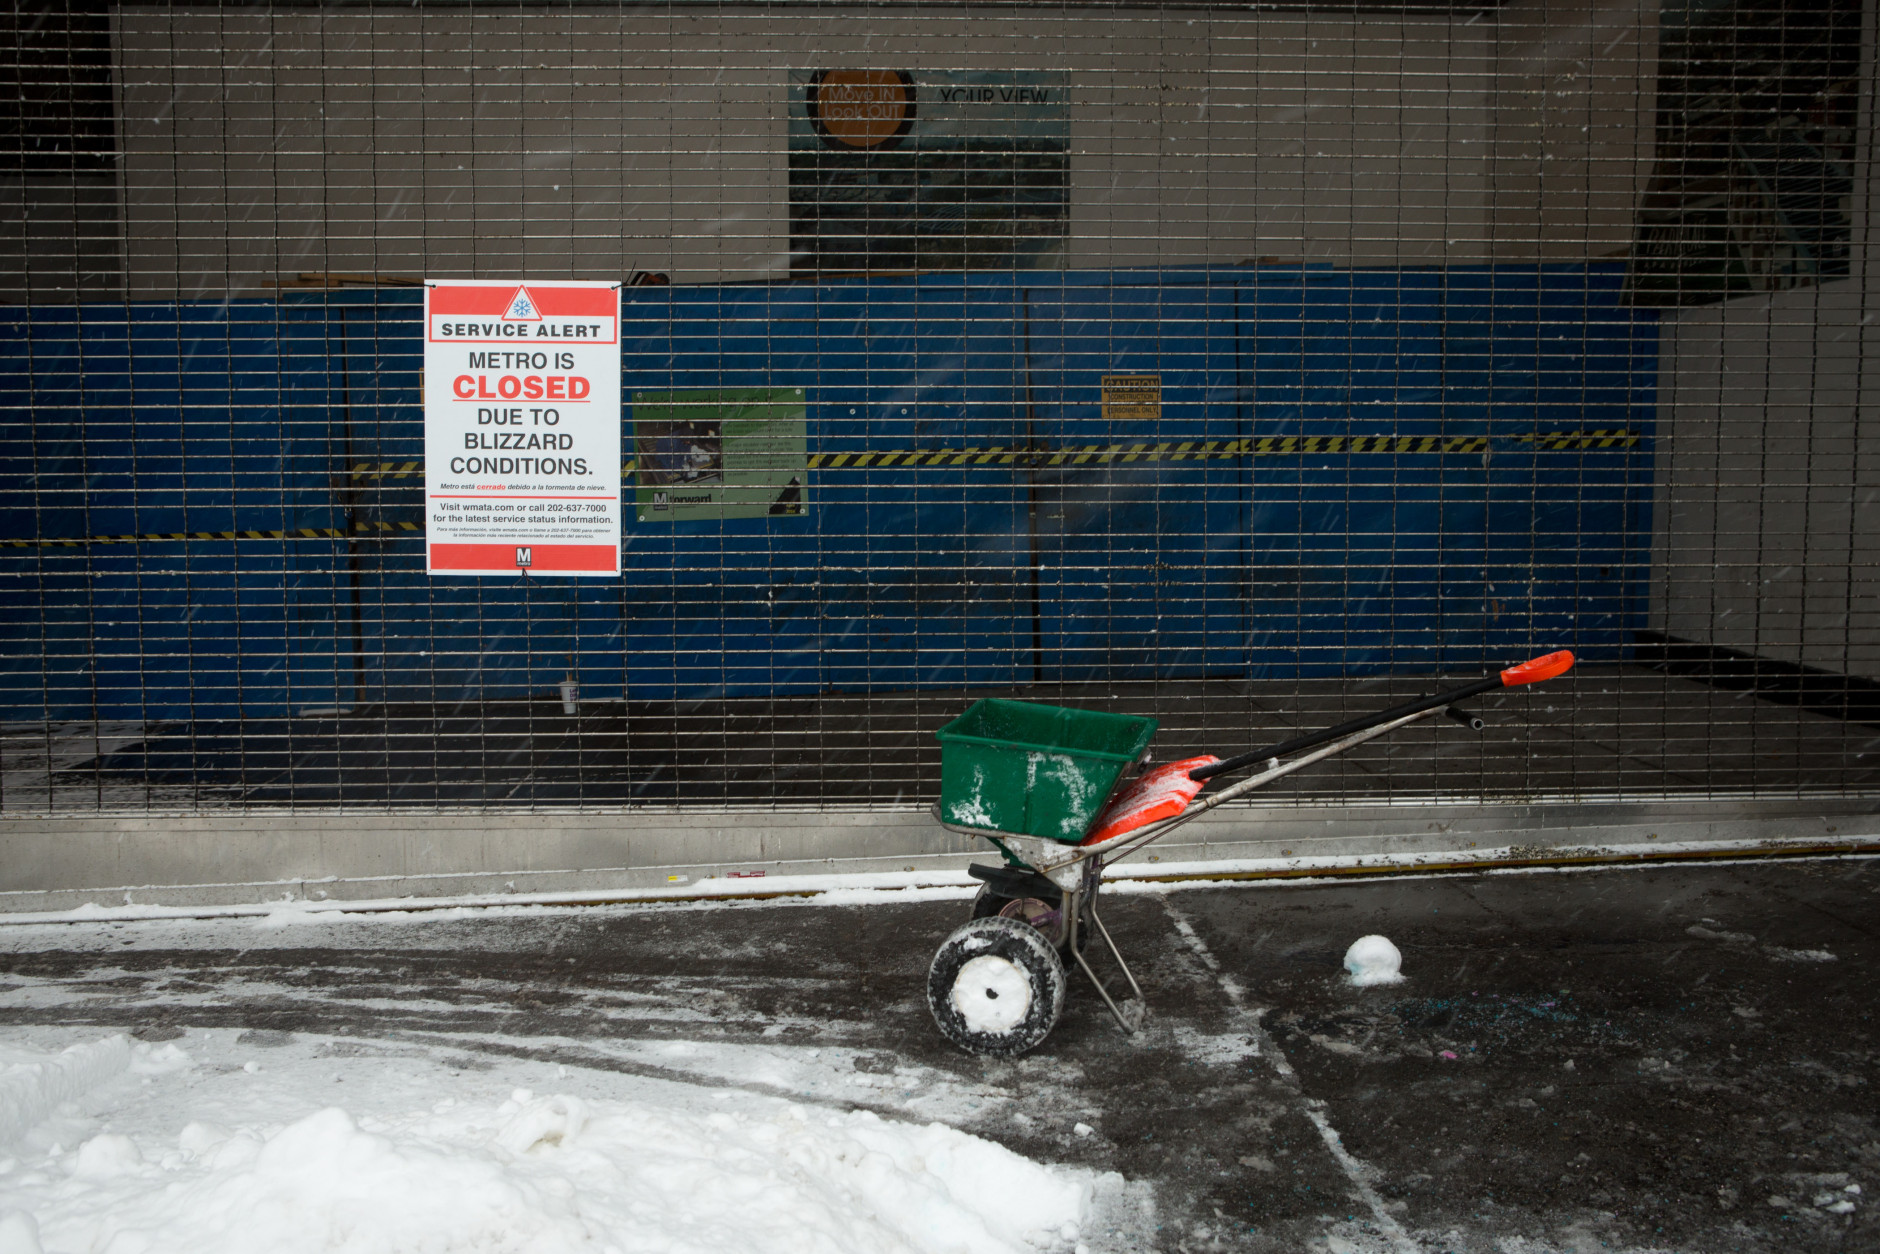 A salt spreader sits in front of the shuttered Georgia Ave.-Petworth metro station on January 23, 2016 in Washington, DC. Over a foot of snow has already fallen in the city in the past 24 hours, in what experts say could be a record-breaking storm.  (Photo by Allison Shelley/Getty Images)